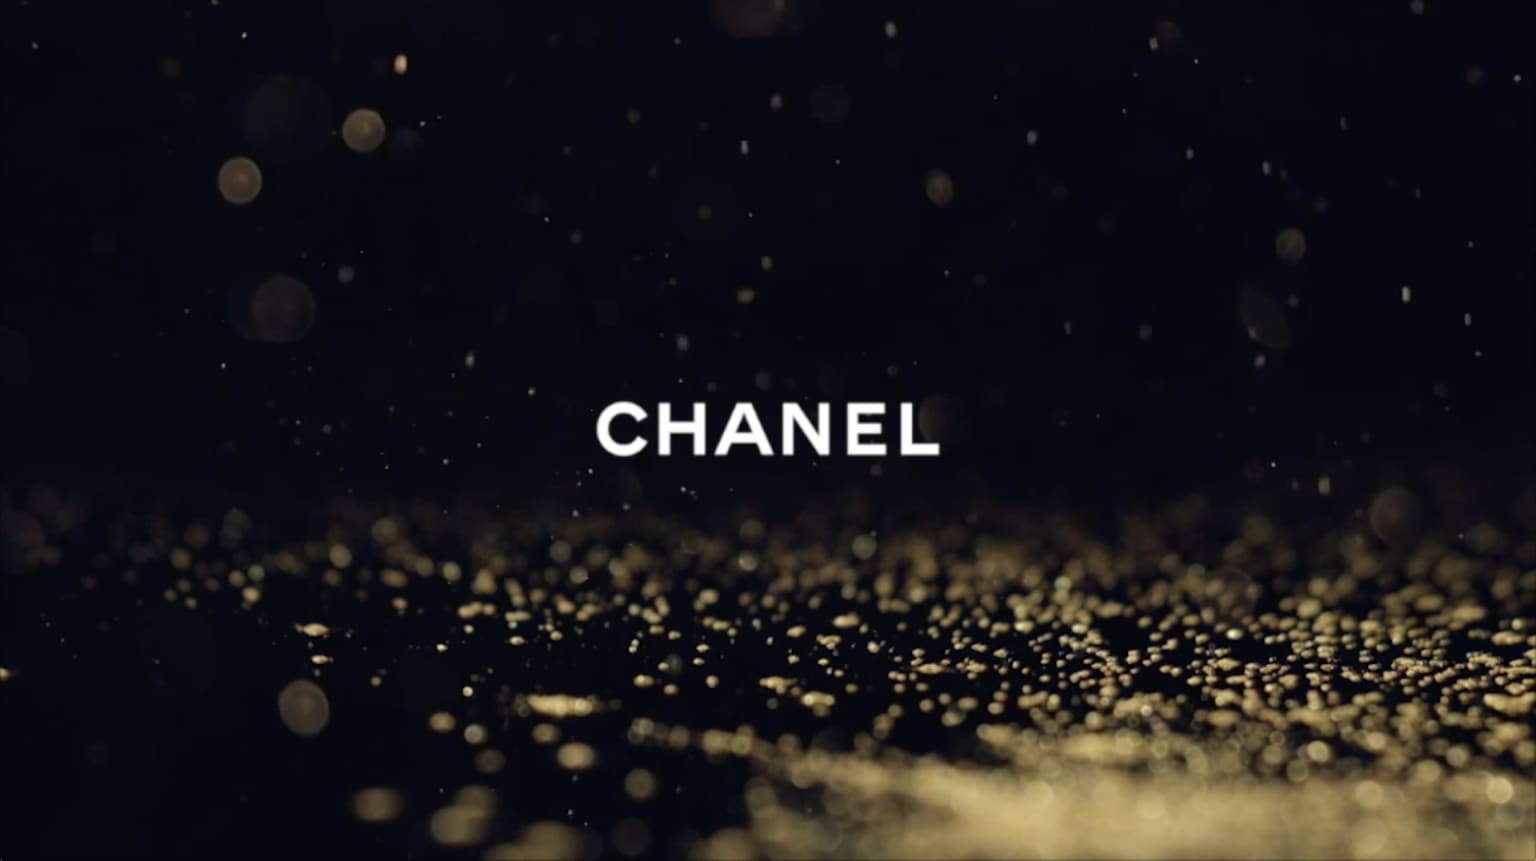 Chanel, 'Diamonds & Alchemy', Branded Content